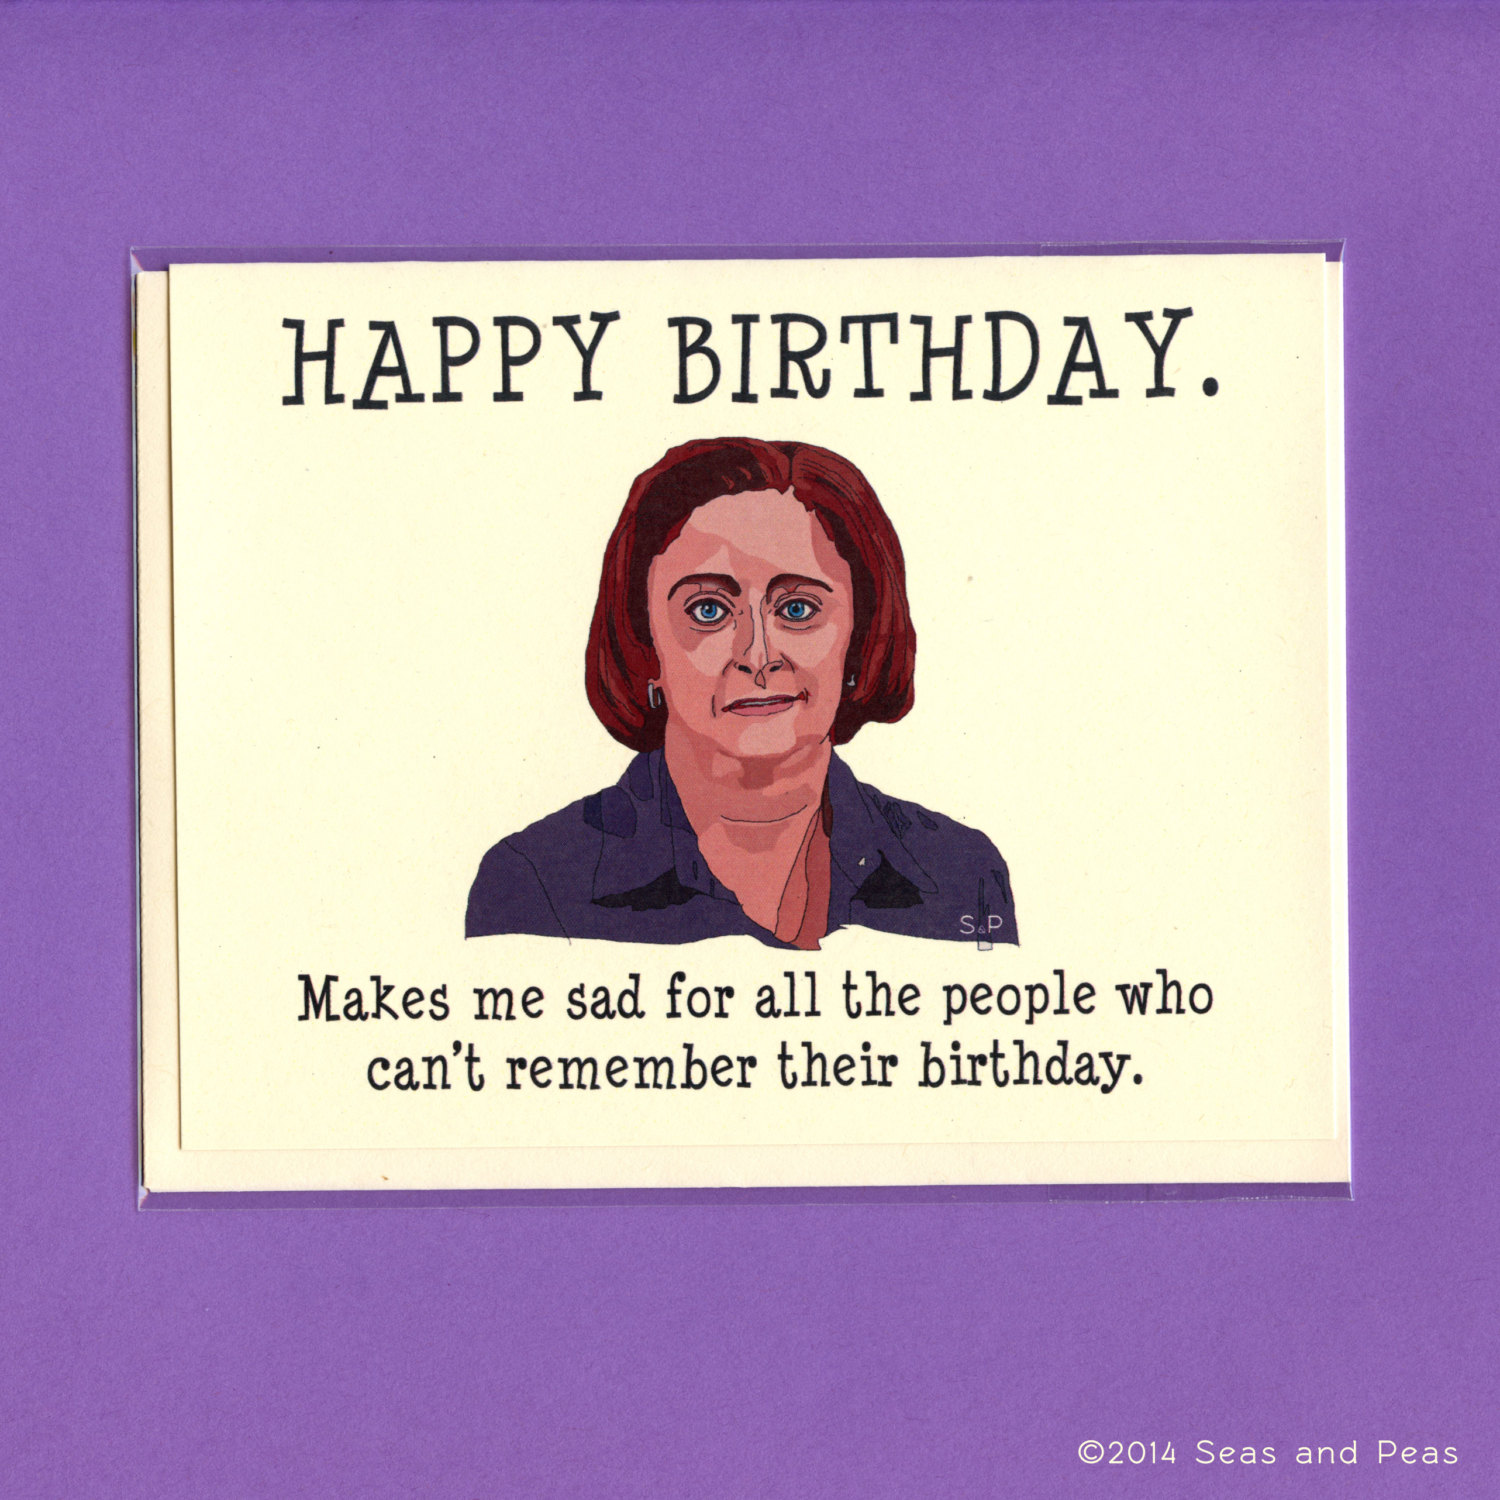 15 Funny Birthday Quotes Nobody Will Forget: Well That's One Way To Wish Someone A Happy Birthday